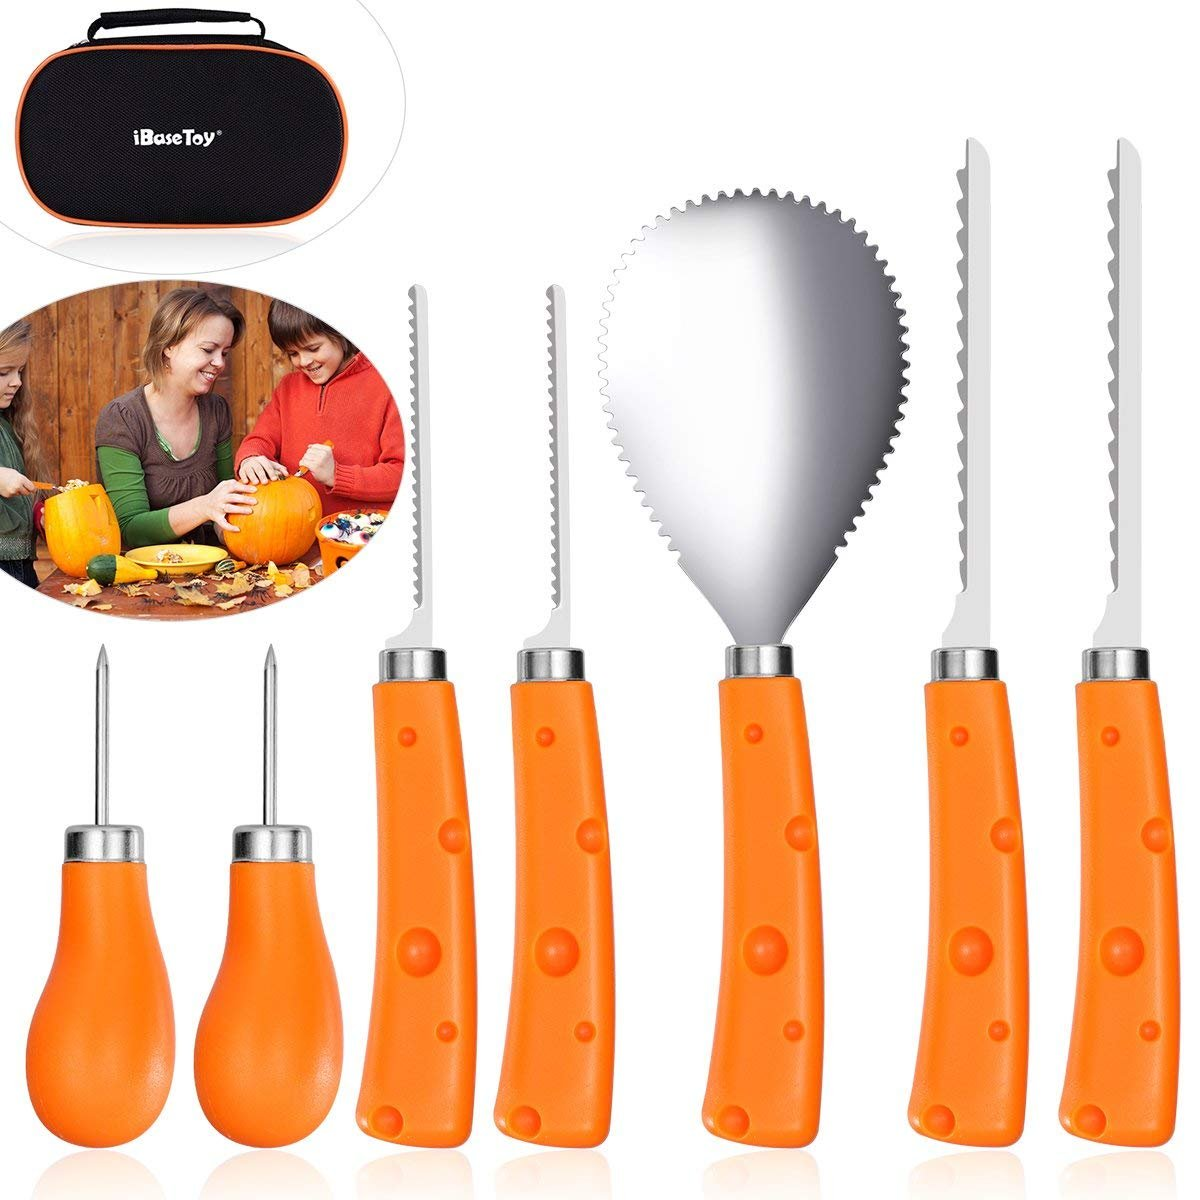 IBASETOY Halloween Pumpkin Carving Kit 7 Pieces - Professional Stainless Steel Pumpkin Carving Tools Set for Kids and Adults, Easily Carve Sculpt Halloween Jack-O-Lanterns (with Carrying Bag)